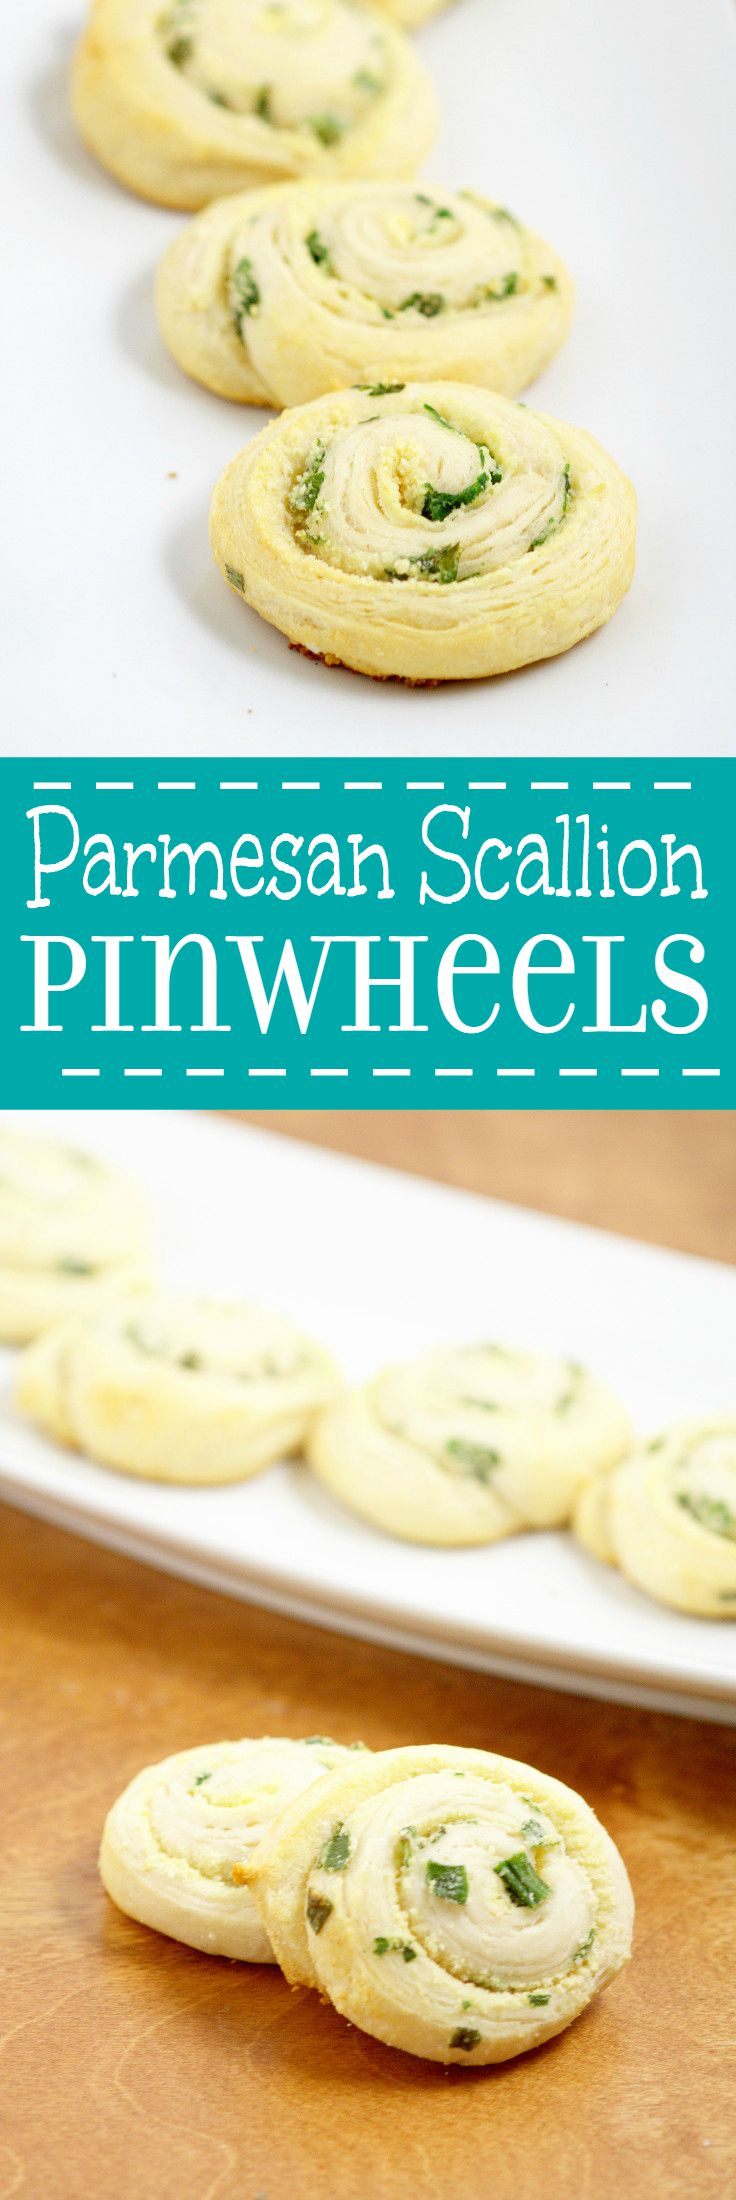 Parmesan Scallion Pinwheels Recipe- An easy, quick, and delicious appetizer recipe idea. Great for a party, Christmas, or a crowd. The buttery goodness of crescent rolls with Parmesan cheese and scallions for a pop of flavor.